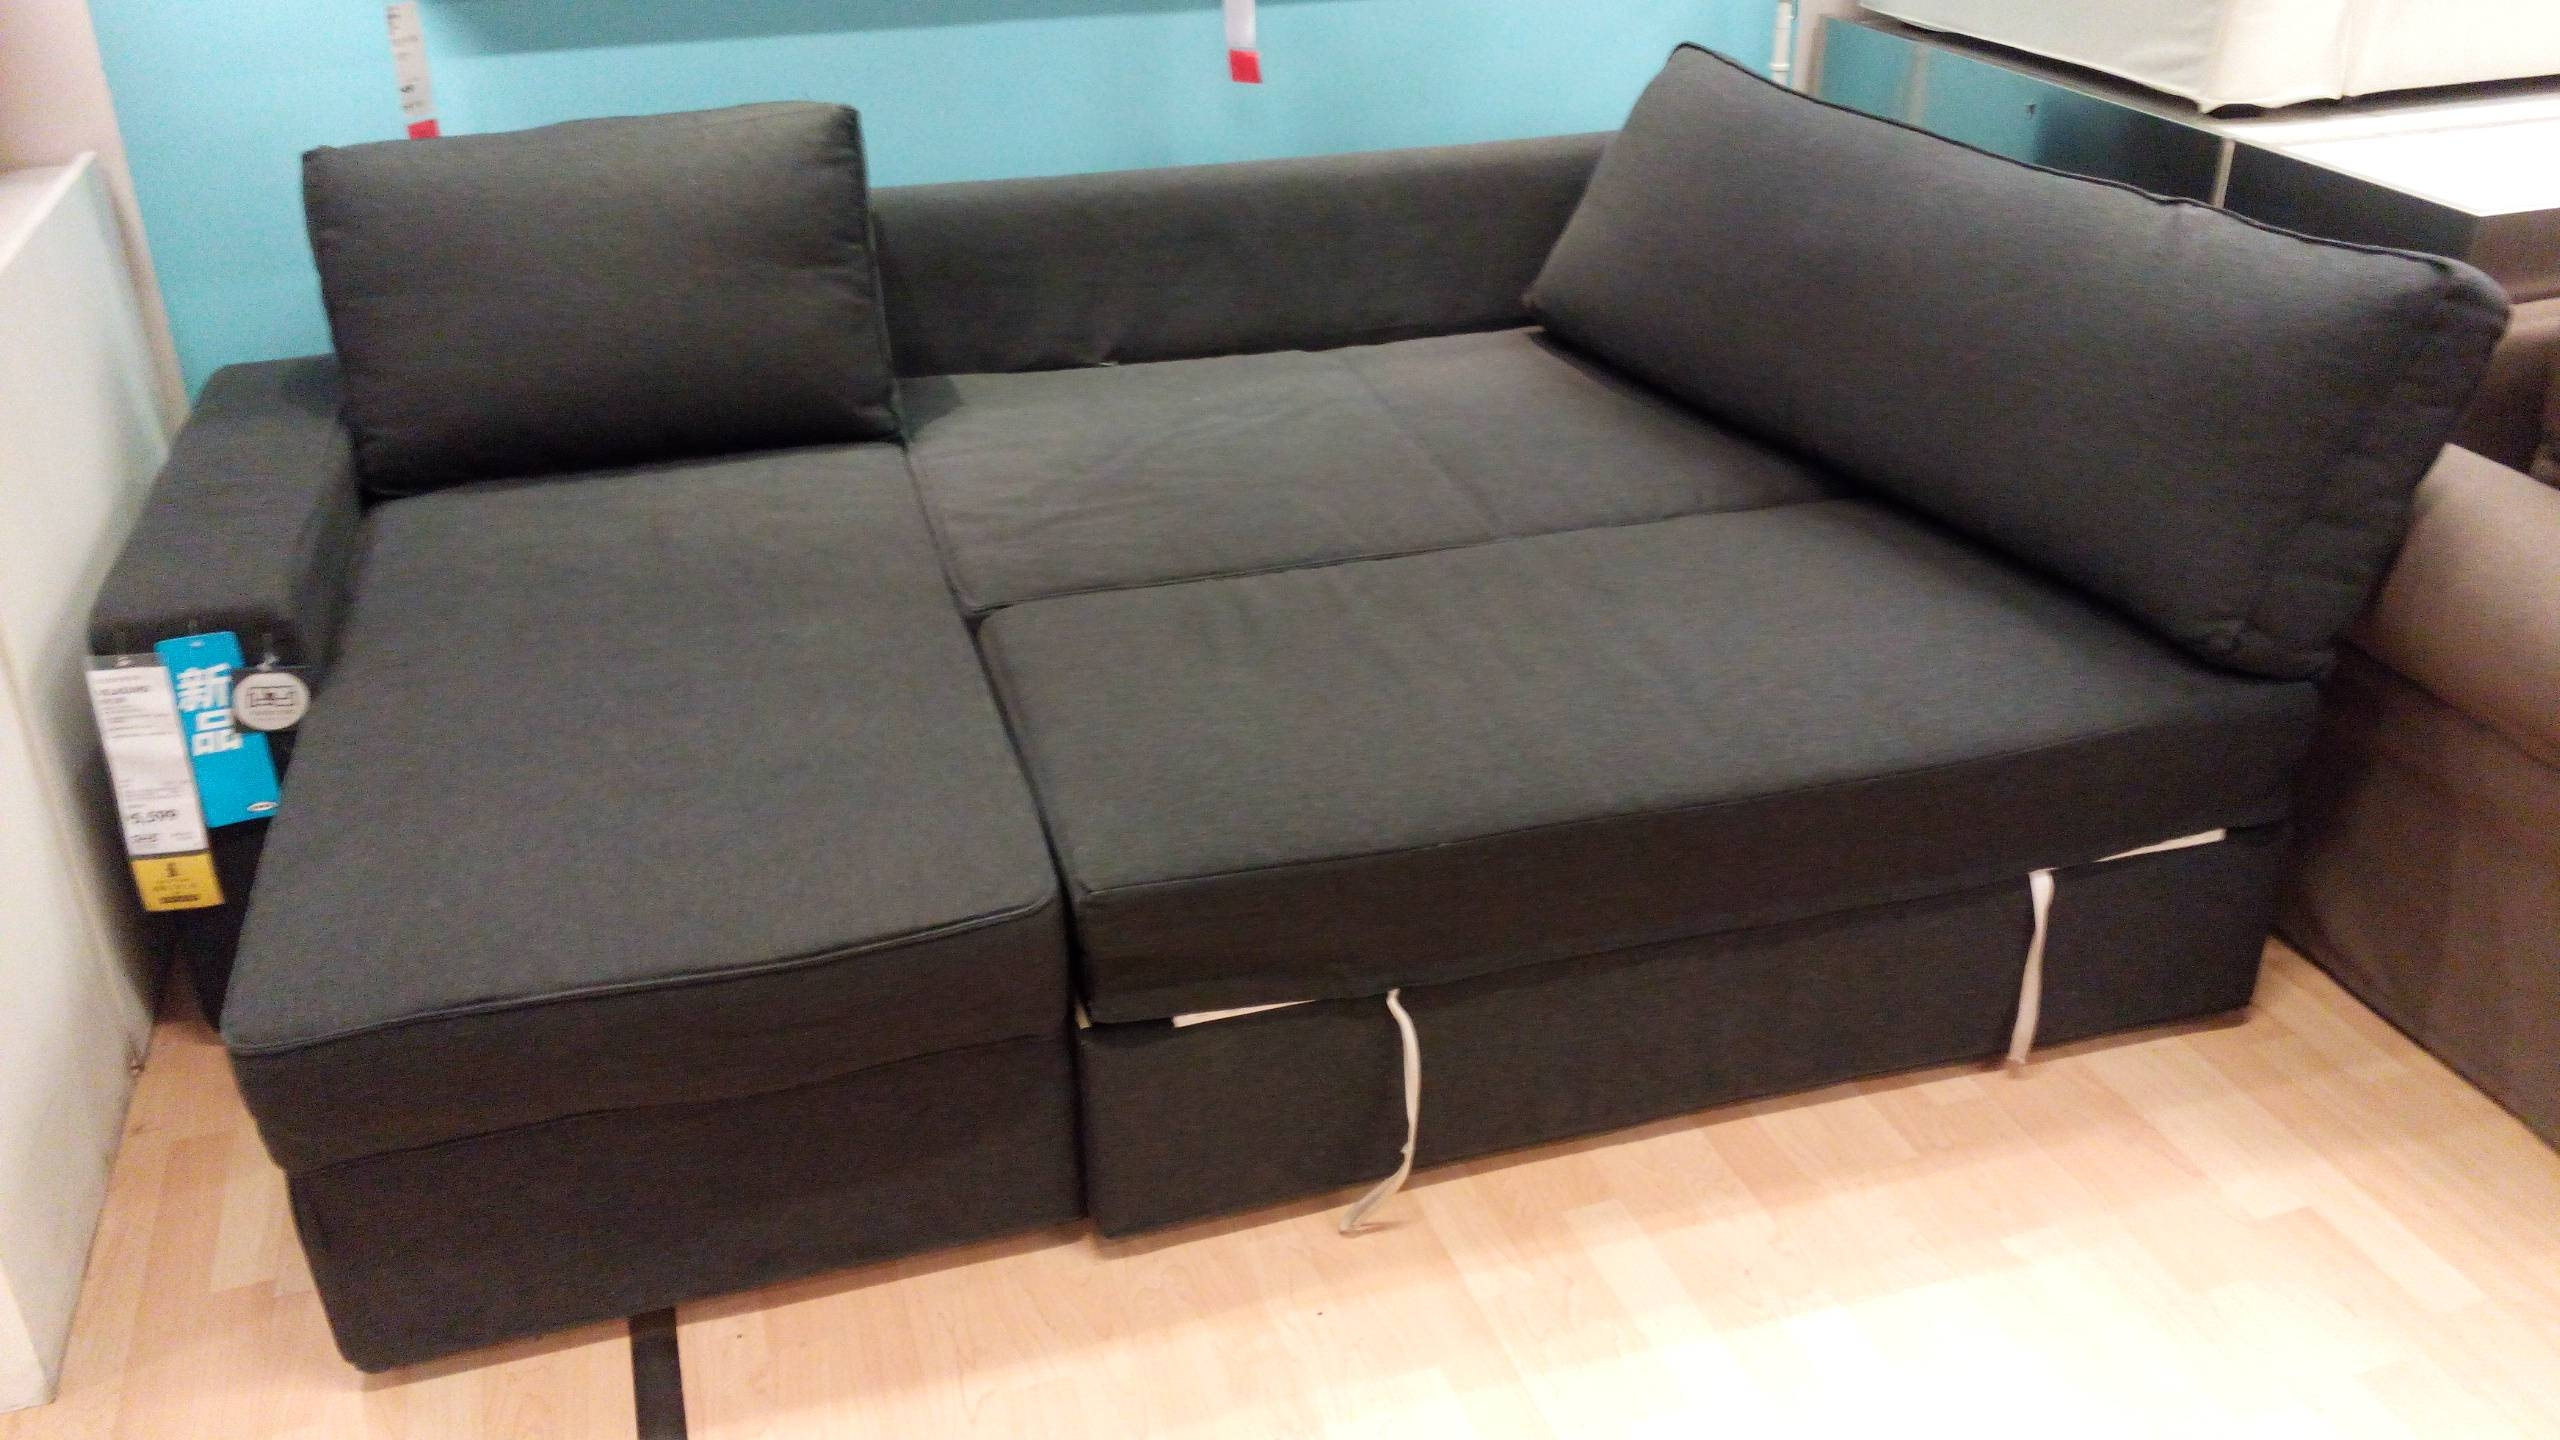 Ikea Vilasund And Backabro Review   Return Of The Sofa Bed Clones! With Regard To Sofa Beds With Chaise Lounge (Photo 2 of 15)